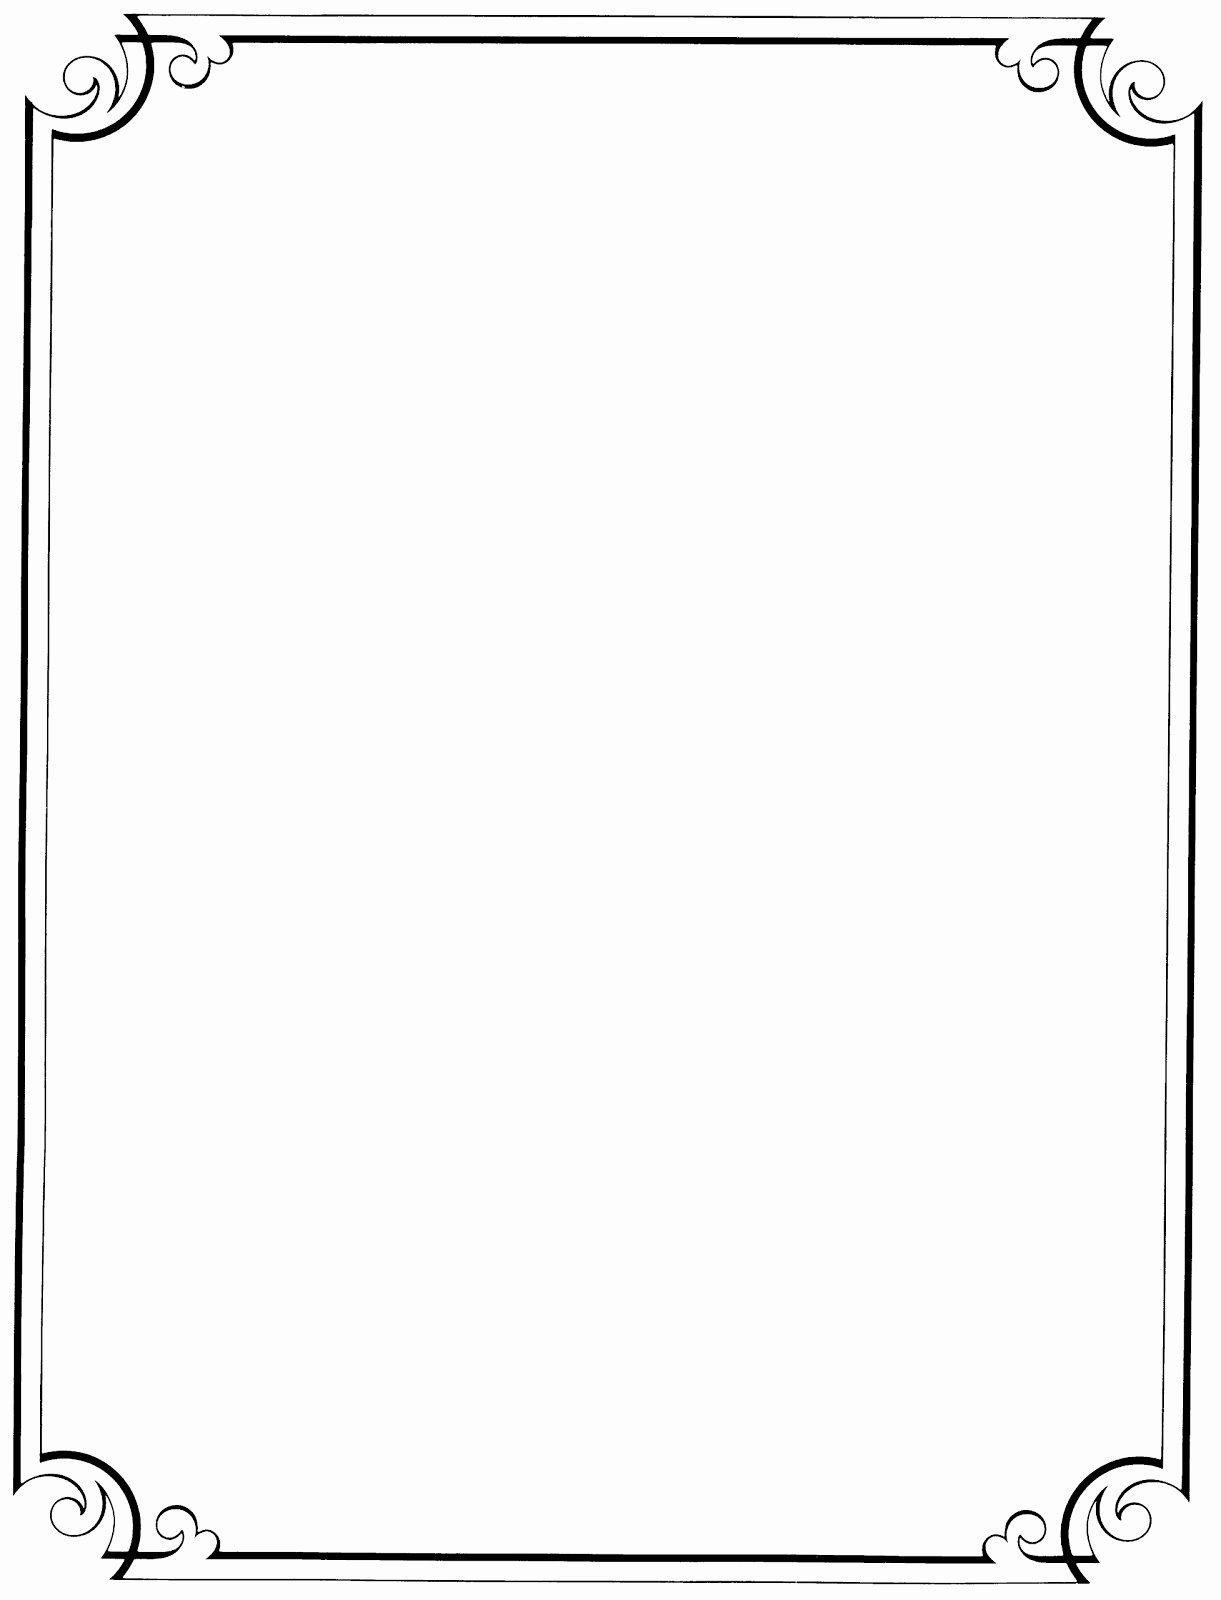 Free Borders for Publisher Unique Black and White Page Borders Free Download Clip Art